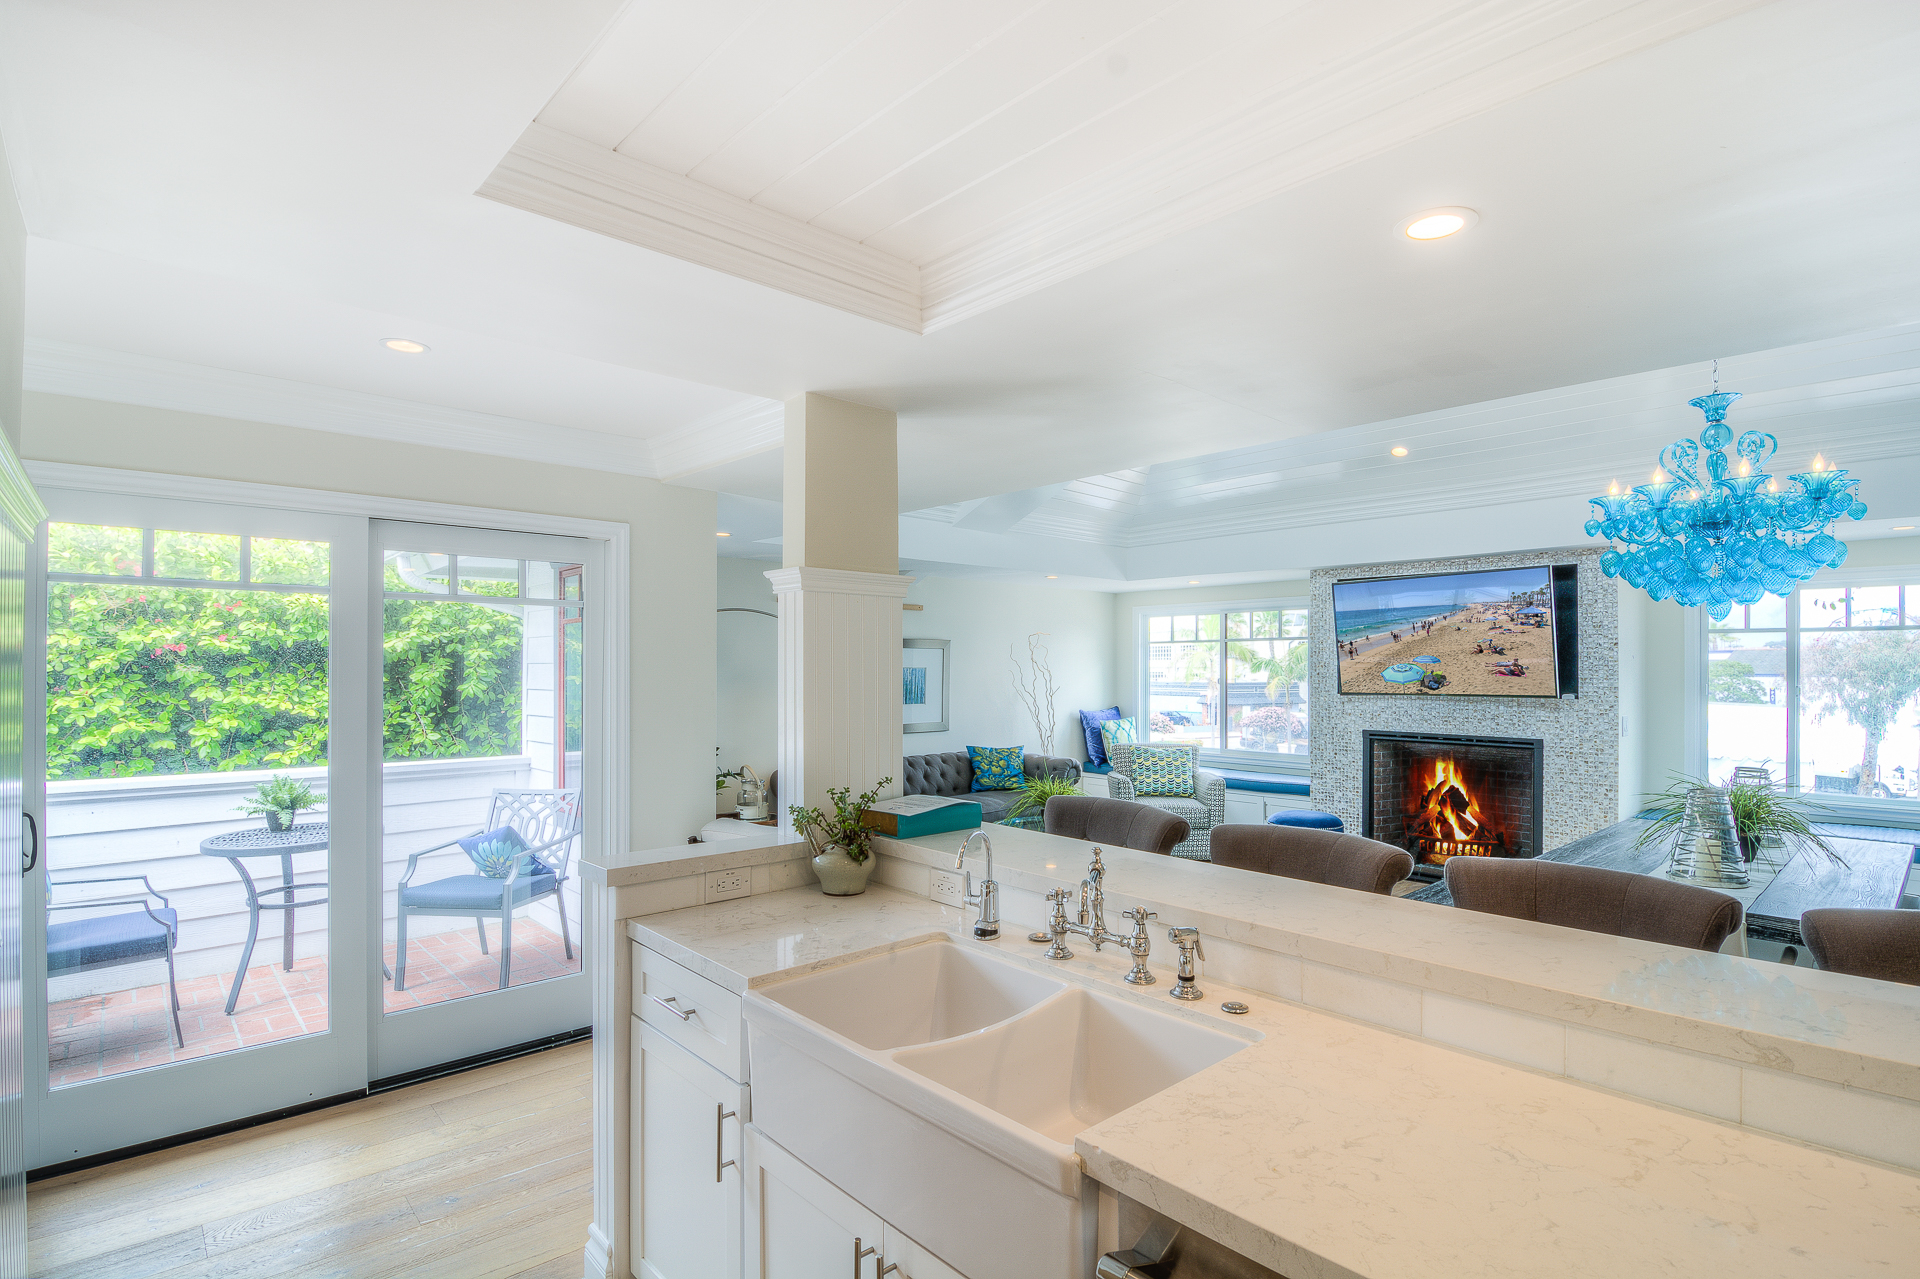 Lucent Pearl - White Sail Realty